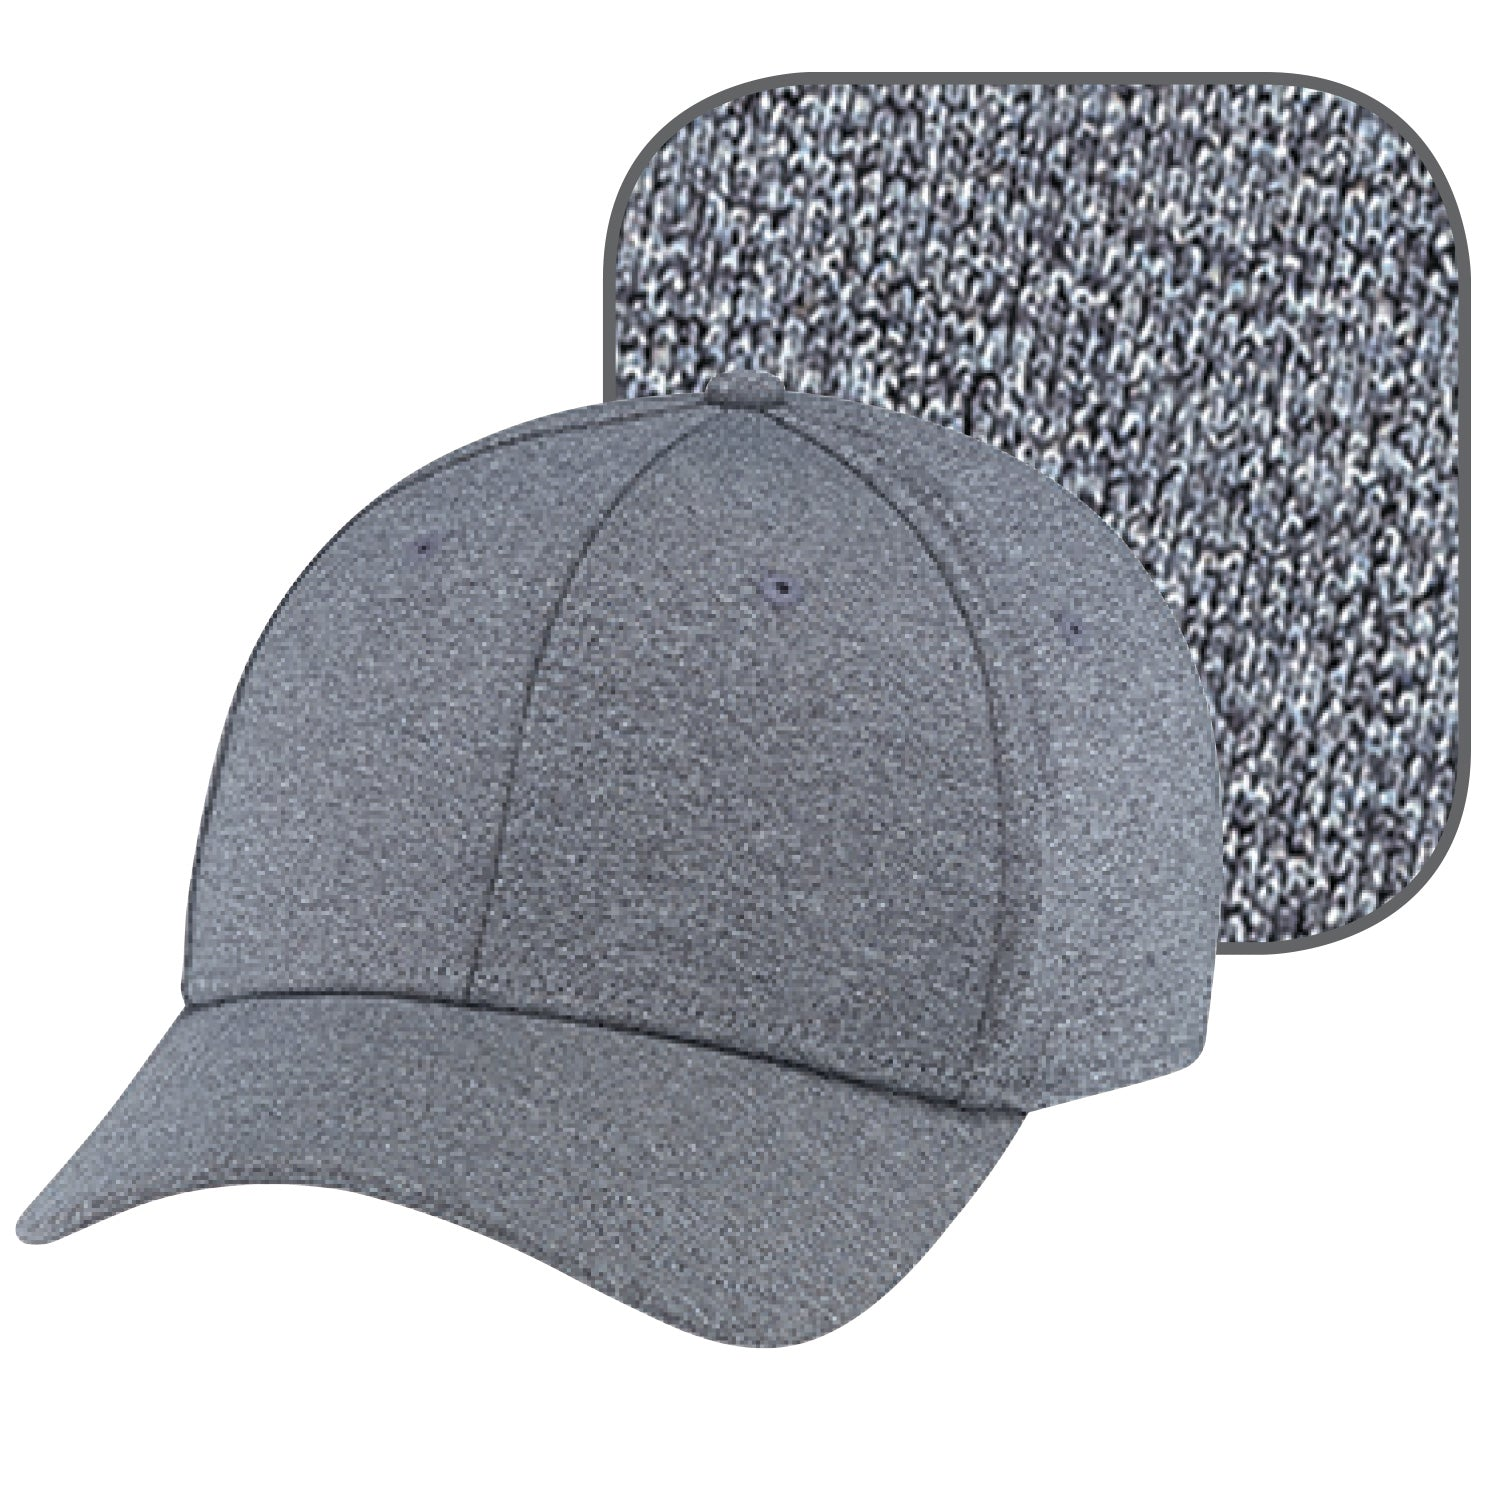 AJM POLYESTER HEATER AND SPANDEX HAT